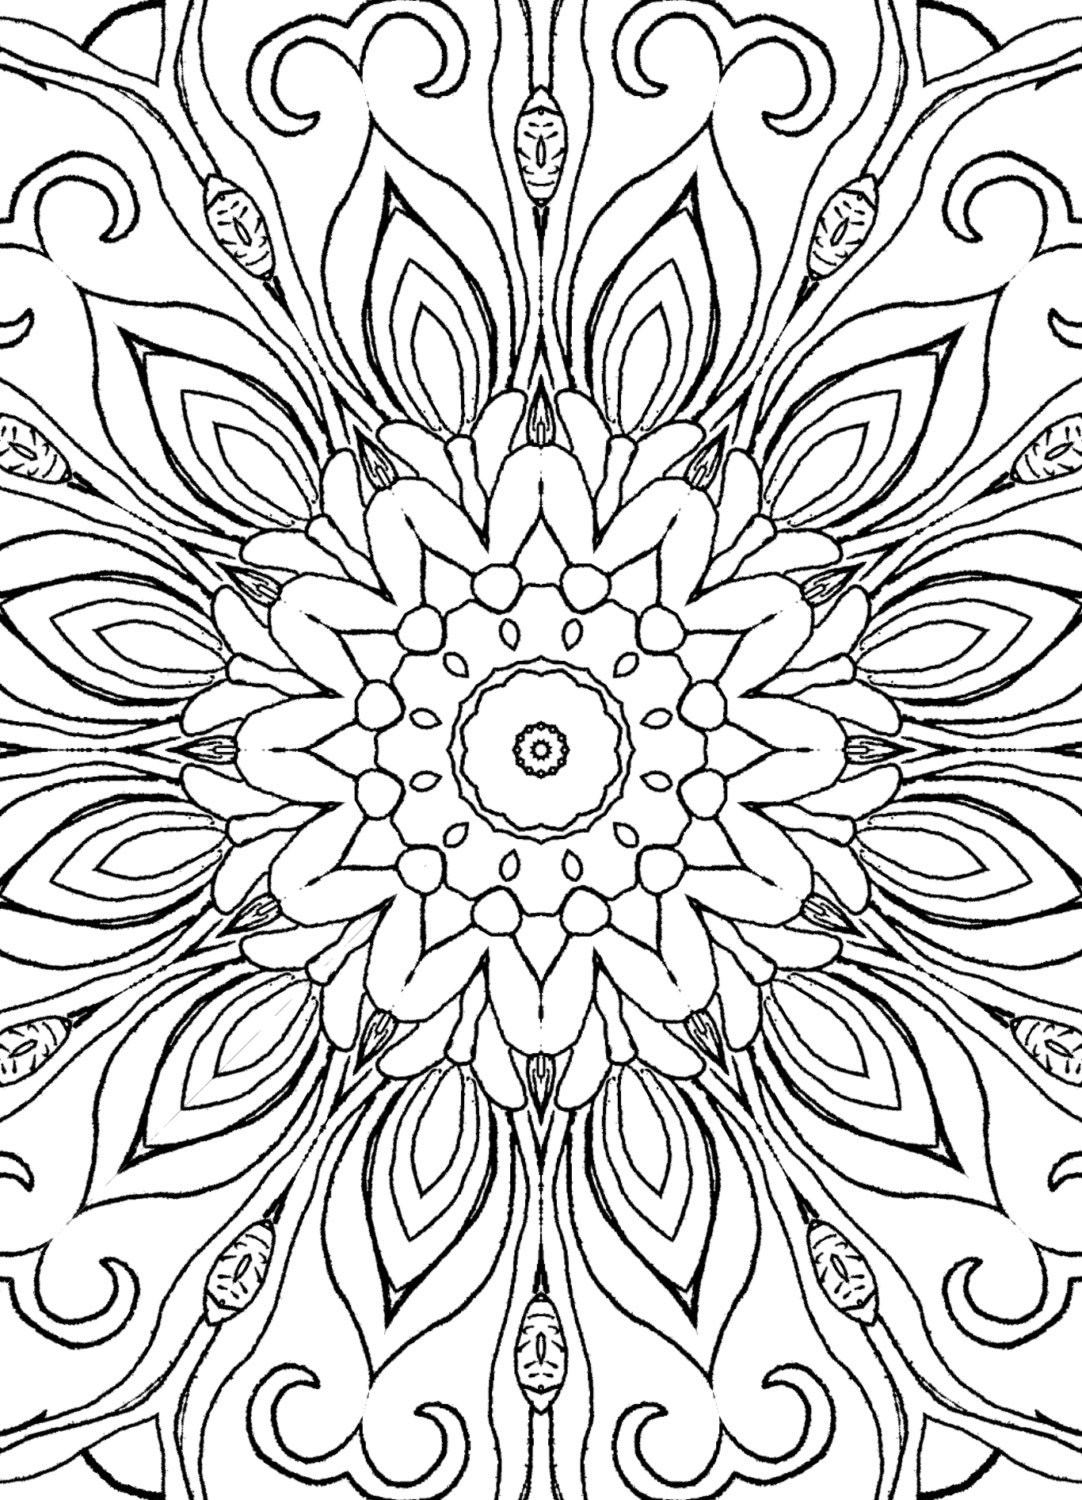 25 Coloring Pages including Mandalas Geometric Designs RugDetailed Mandala Coloring Pages For Adults